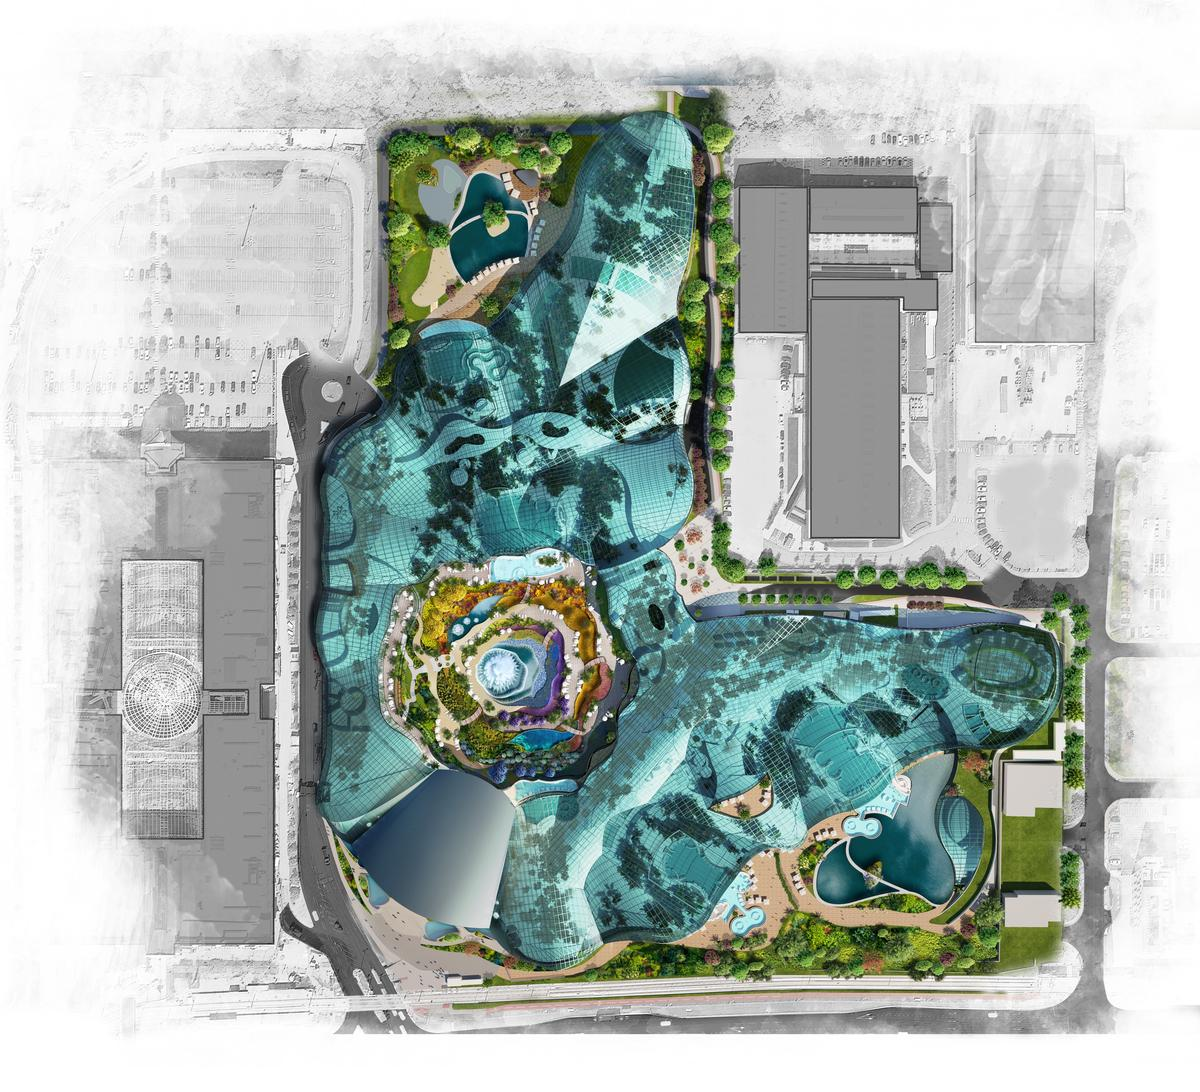 Therme Manchester will cover an area of 28ac (11ha), with a 65,000sq m (700,000sq ft) / Therme Group